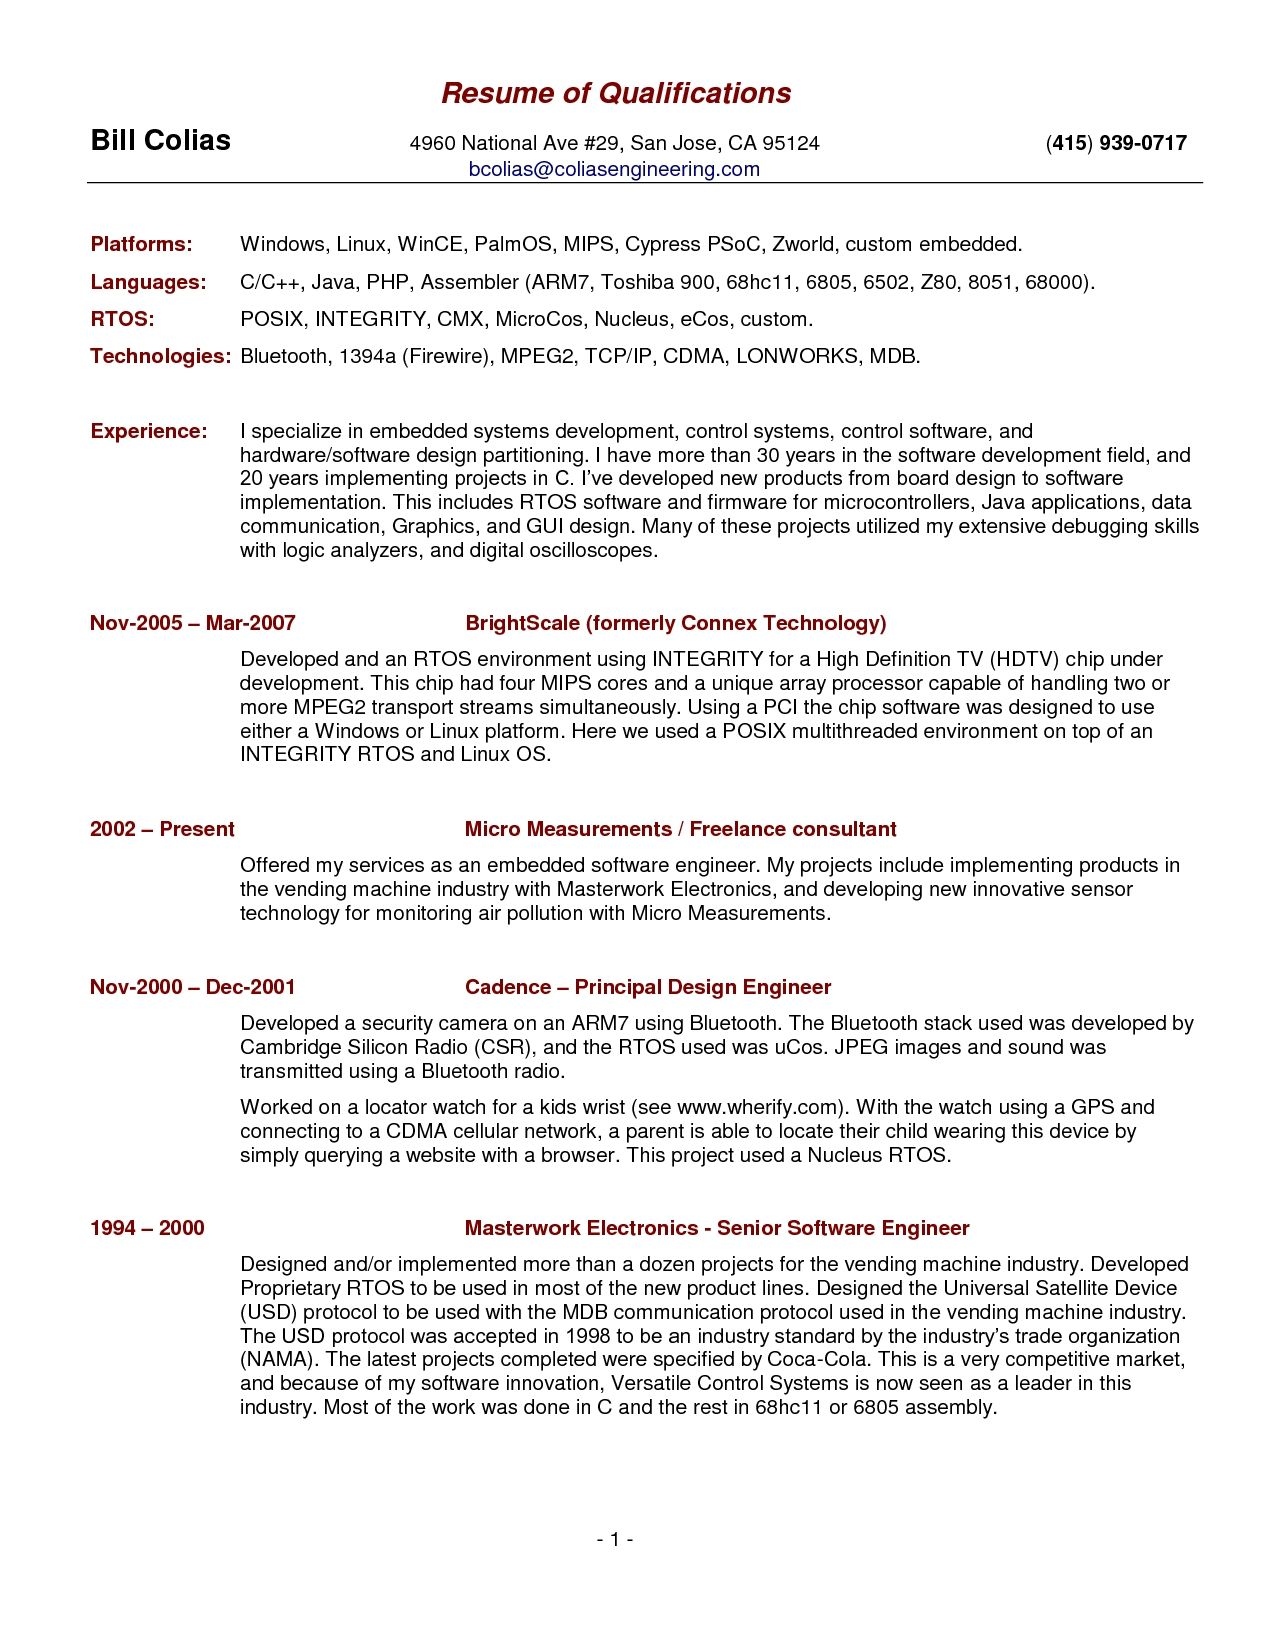 Qualifications For A Resume Examples 7f8ea3a2a New Resume Skills – Job Qualifications Examples for Resume